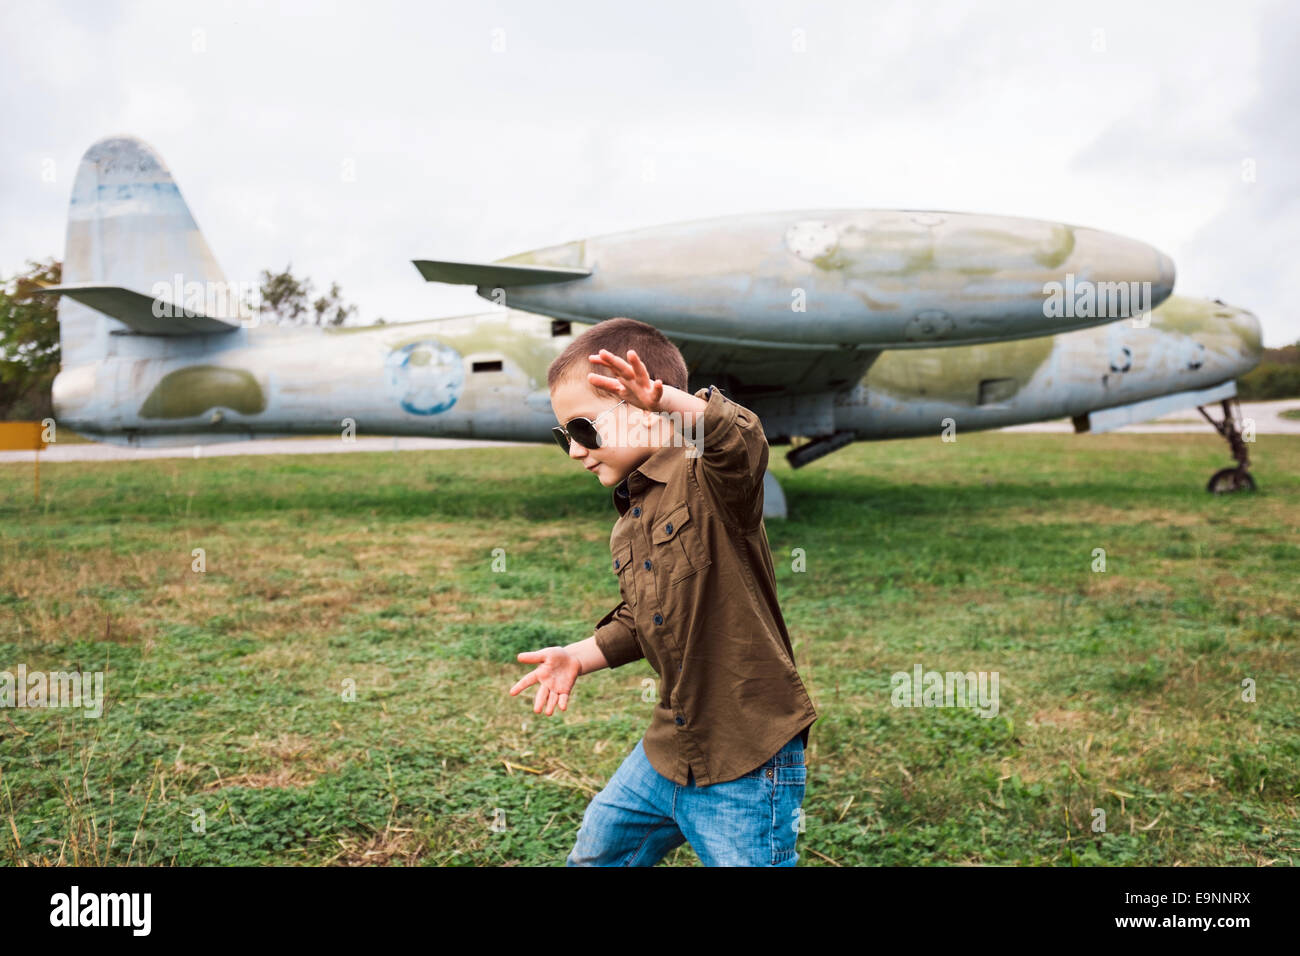 Little boy playing near the airplane - Stock Image